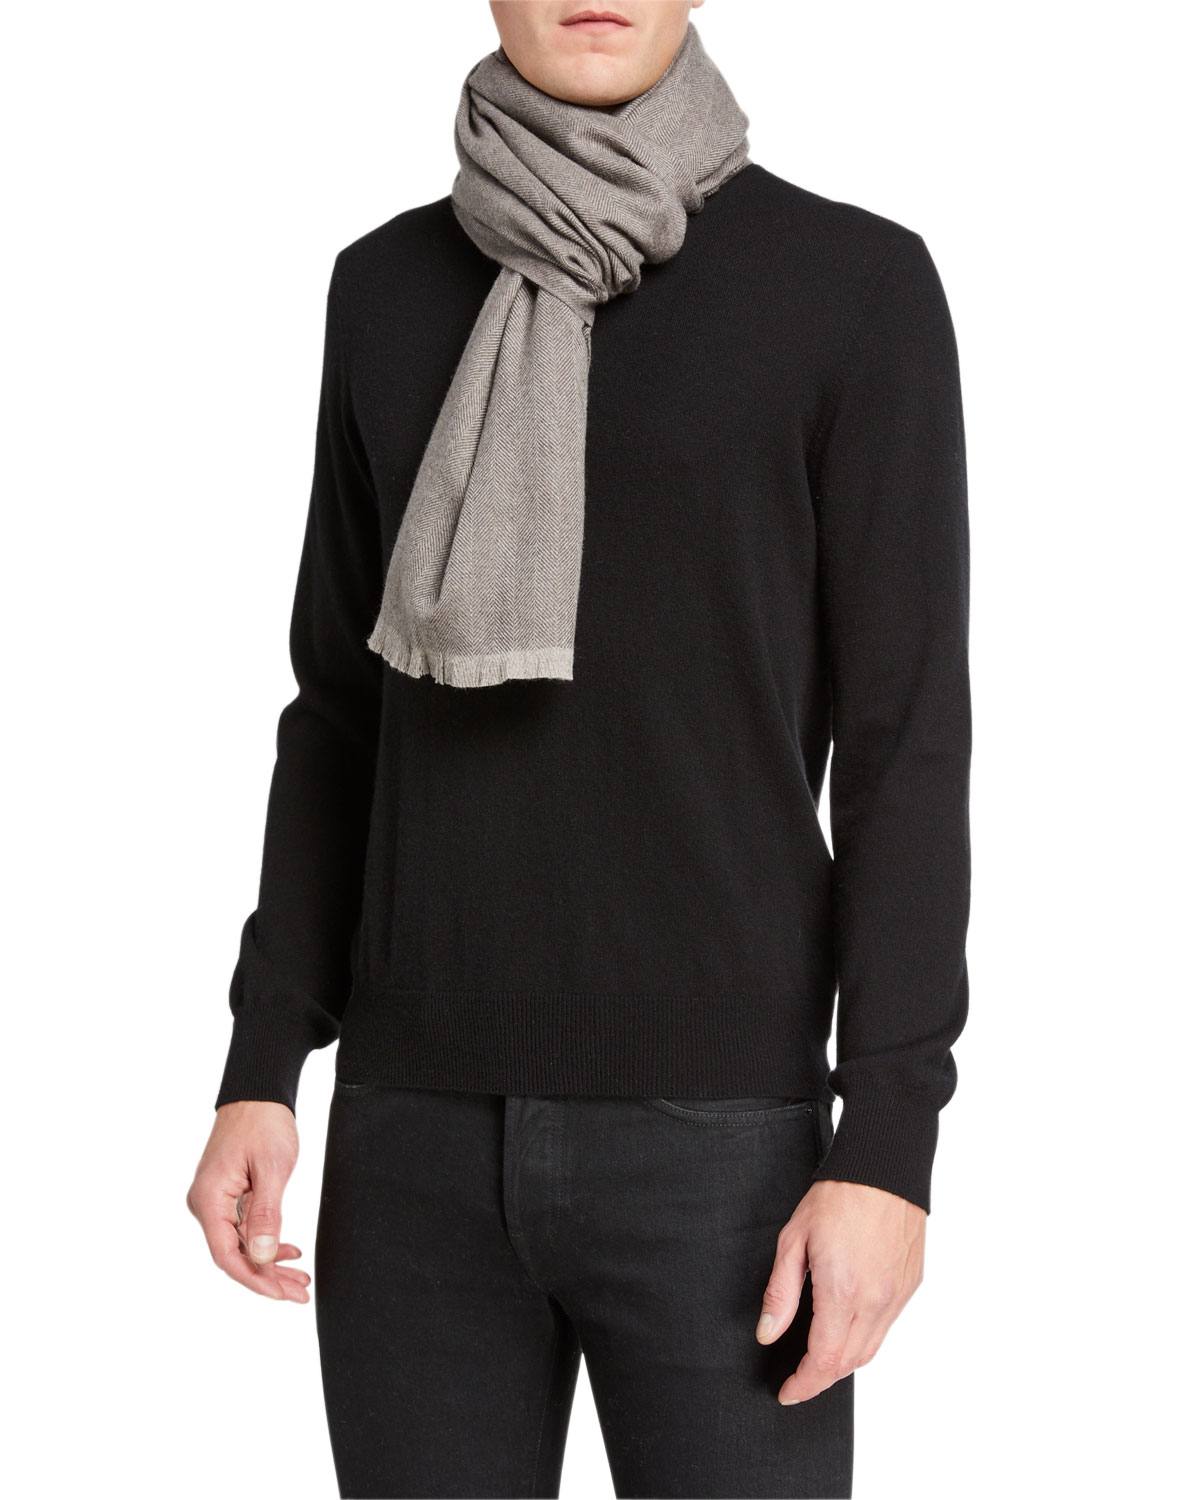 Tom Ford Accessories MEN'S WOOL SCARF